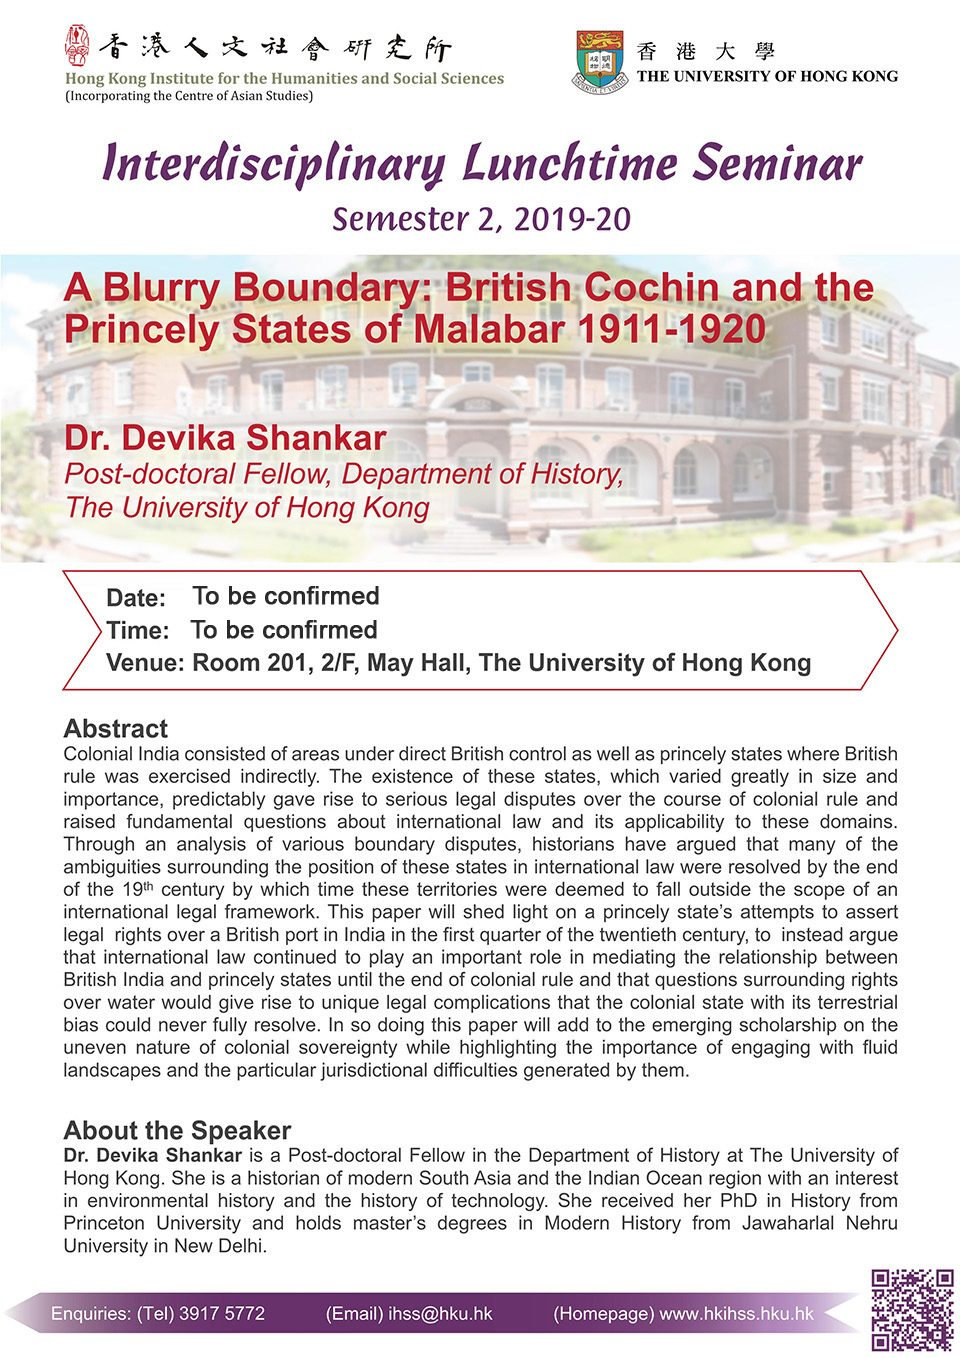 """Interdisciplinary Lunchtime Seminar on """"A Blurry Boundary: British Cochin and the Princely States of Malabar 1911 – 1920"""" by Dr. Devika Shankar"""